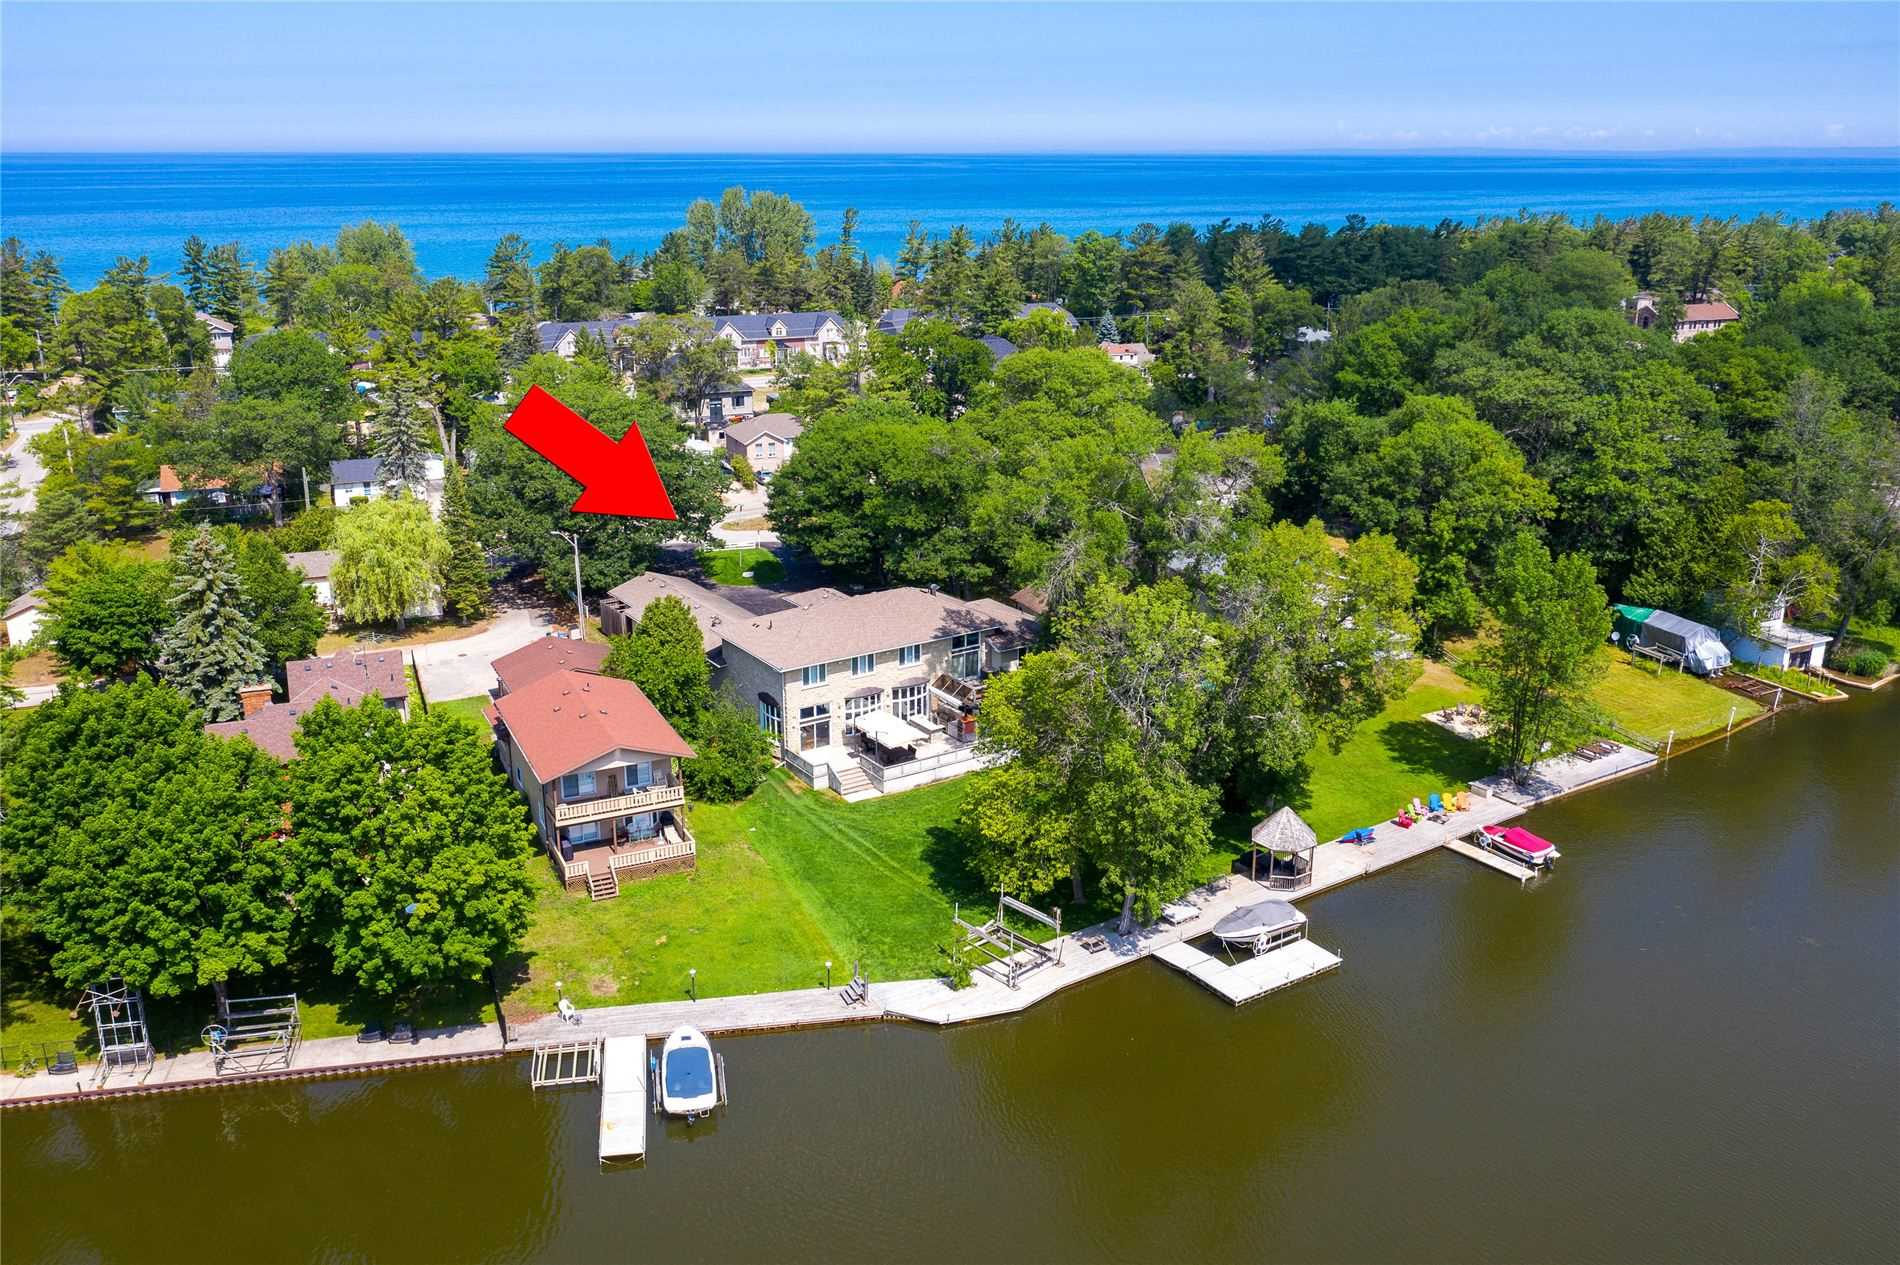 211 Old Mosley St, Wasaga Beach, Ontario L9Z 2J2, 9 Bedrooms Bedrooms, 28 Rooms Rooms,5 BathroomsBathrooms,Detached,For Sale,Old Mosley,S4858825